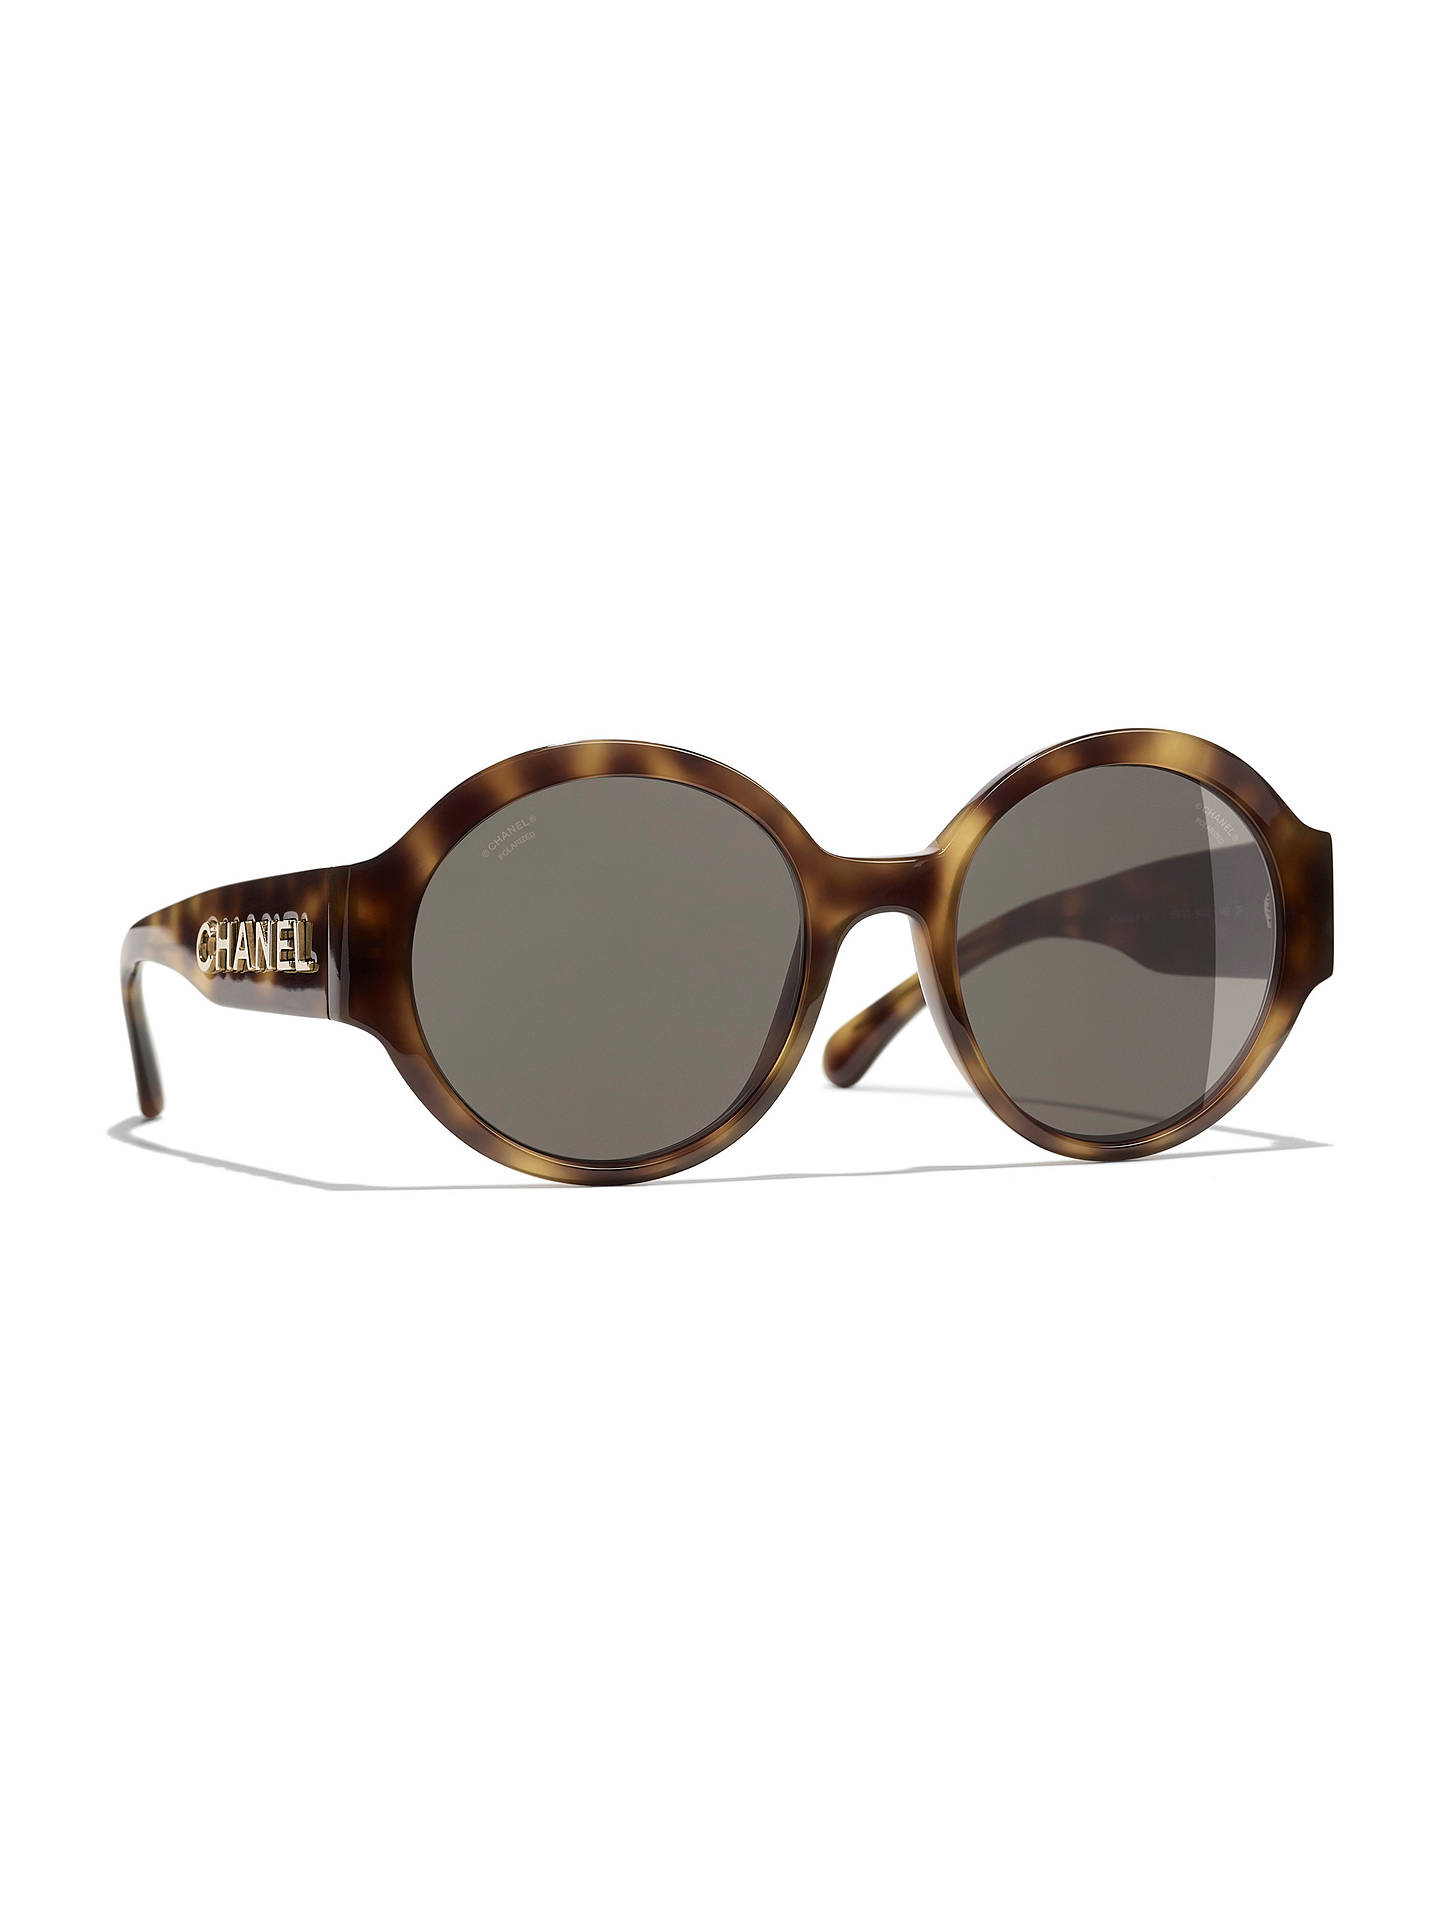 92bb24d47aee9 Buy CHANEL Oval Sunglasses CH5410 Havana Brown Online at johnlewis.com ...